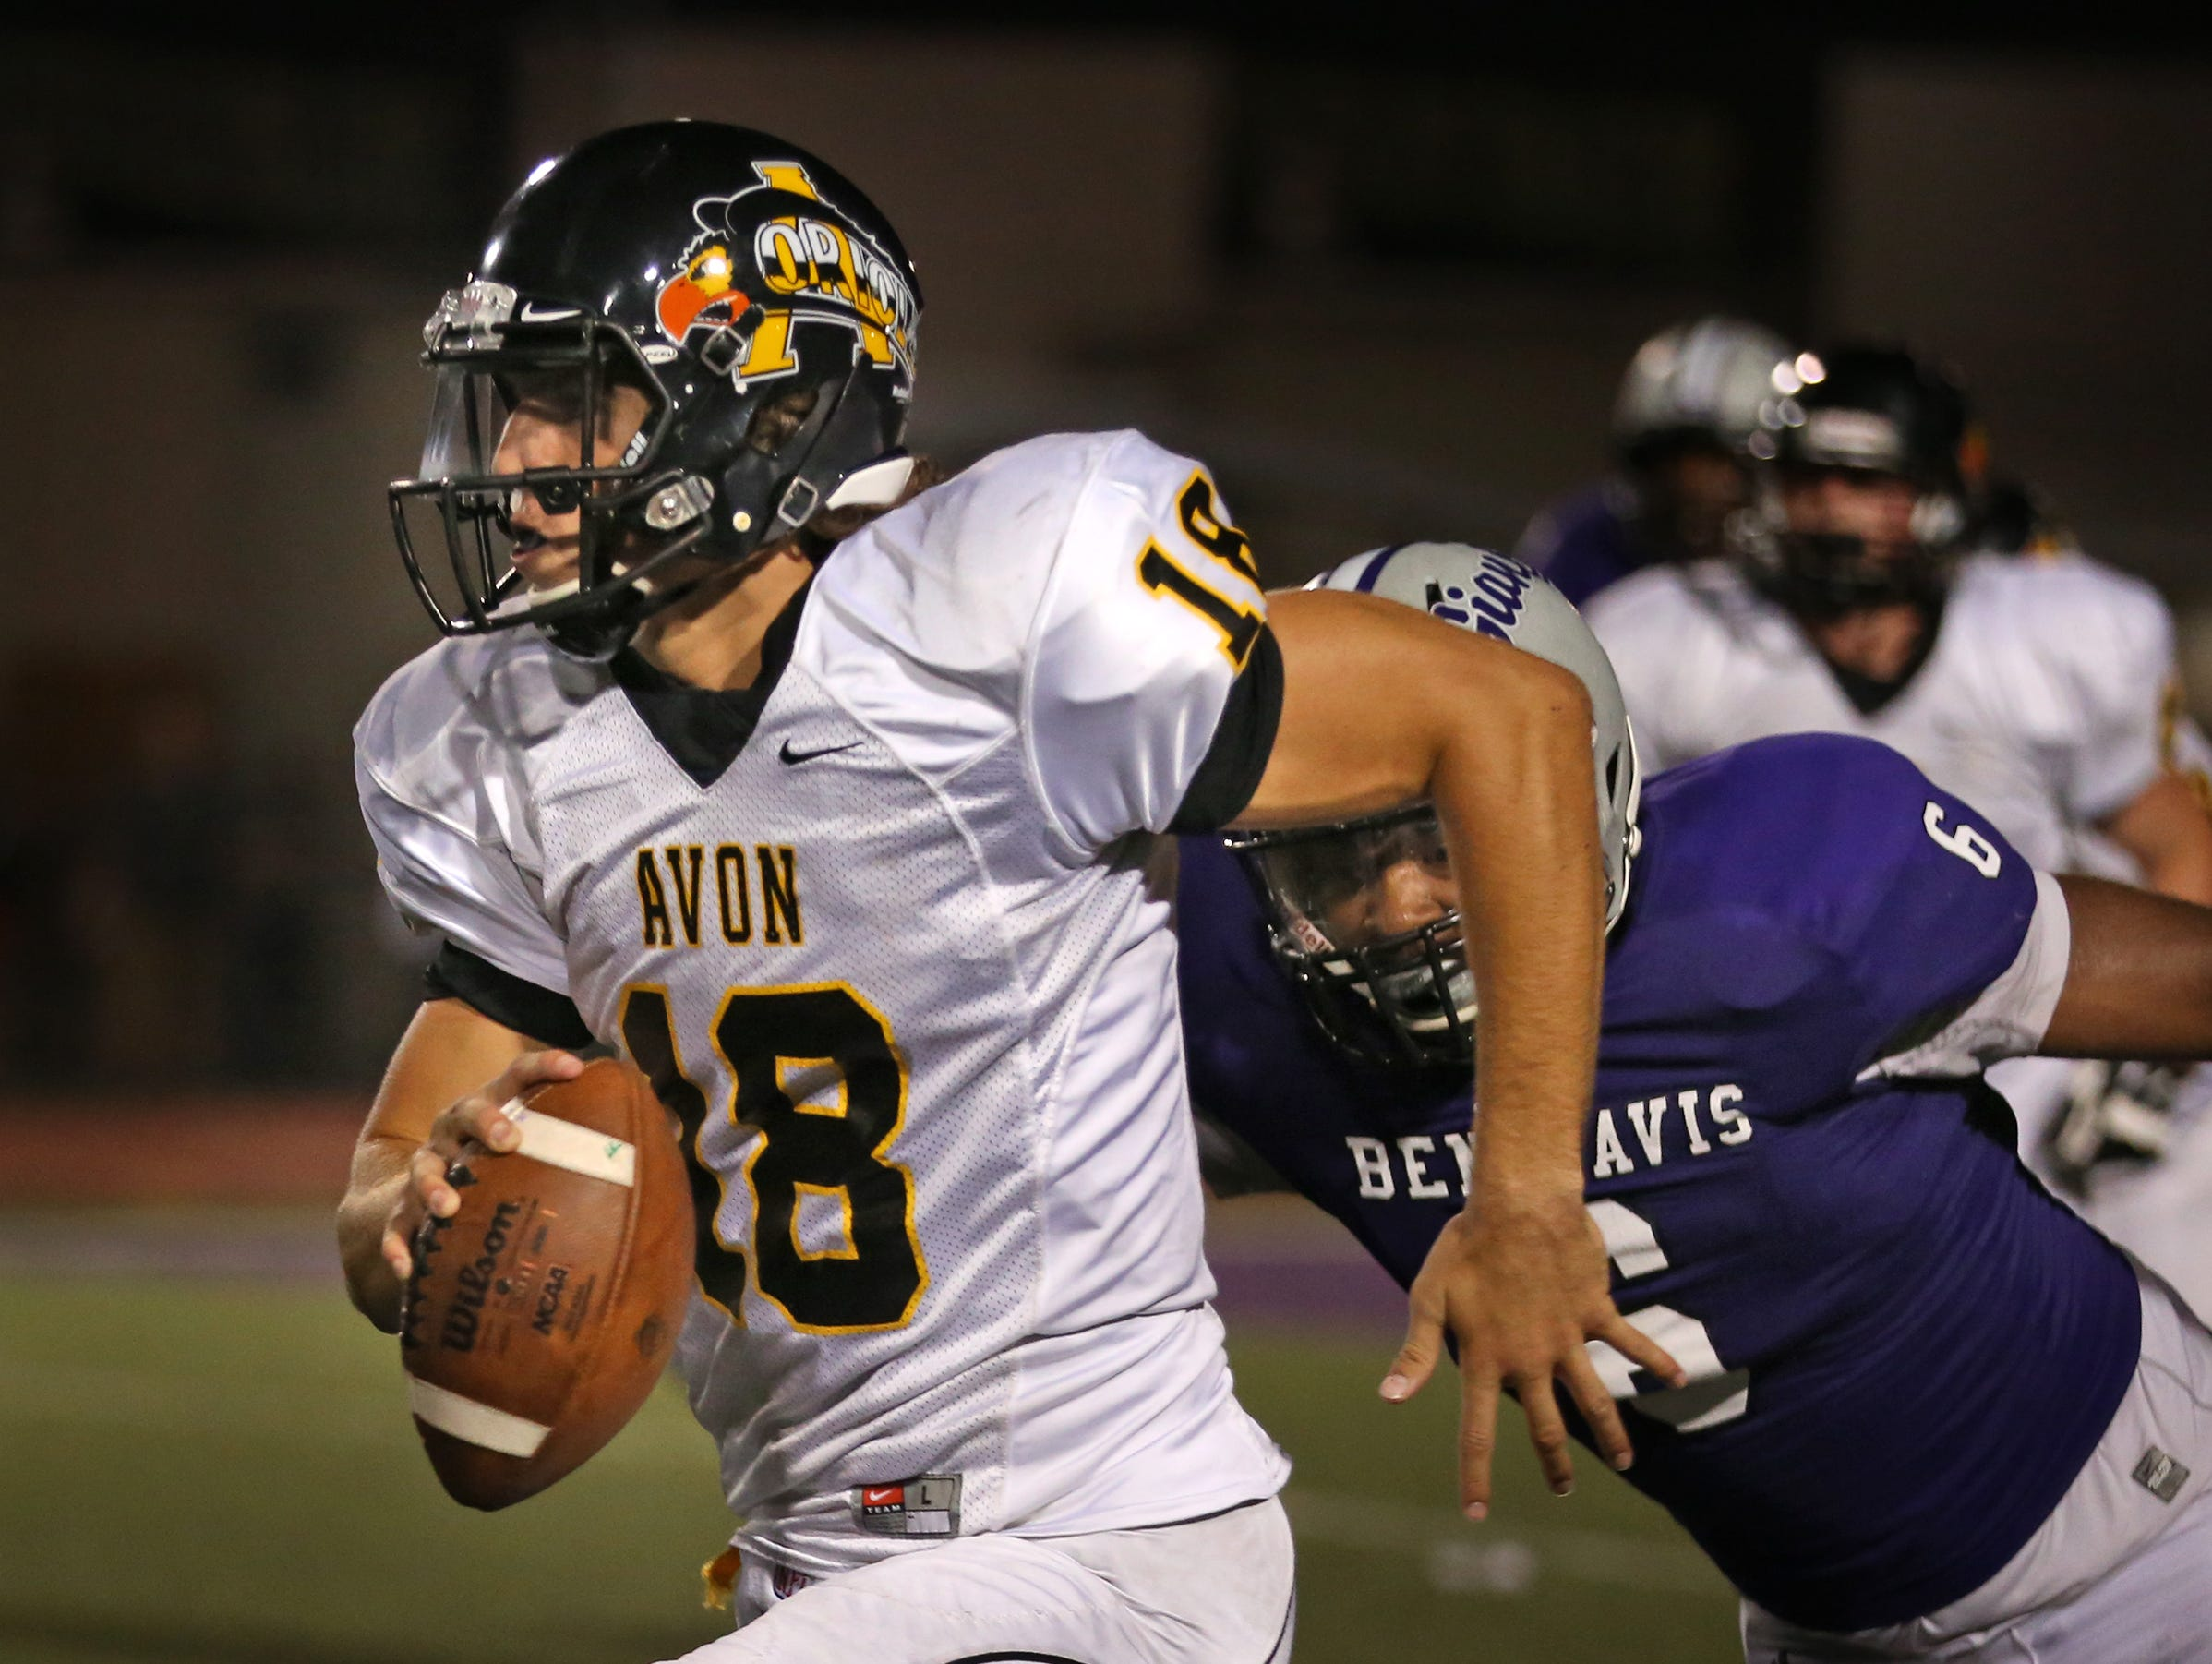 Despite another strong performance from Brandon Peters, Avon came up just short against No. 1 Ben Davis on Friday.